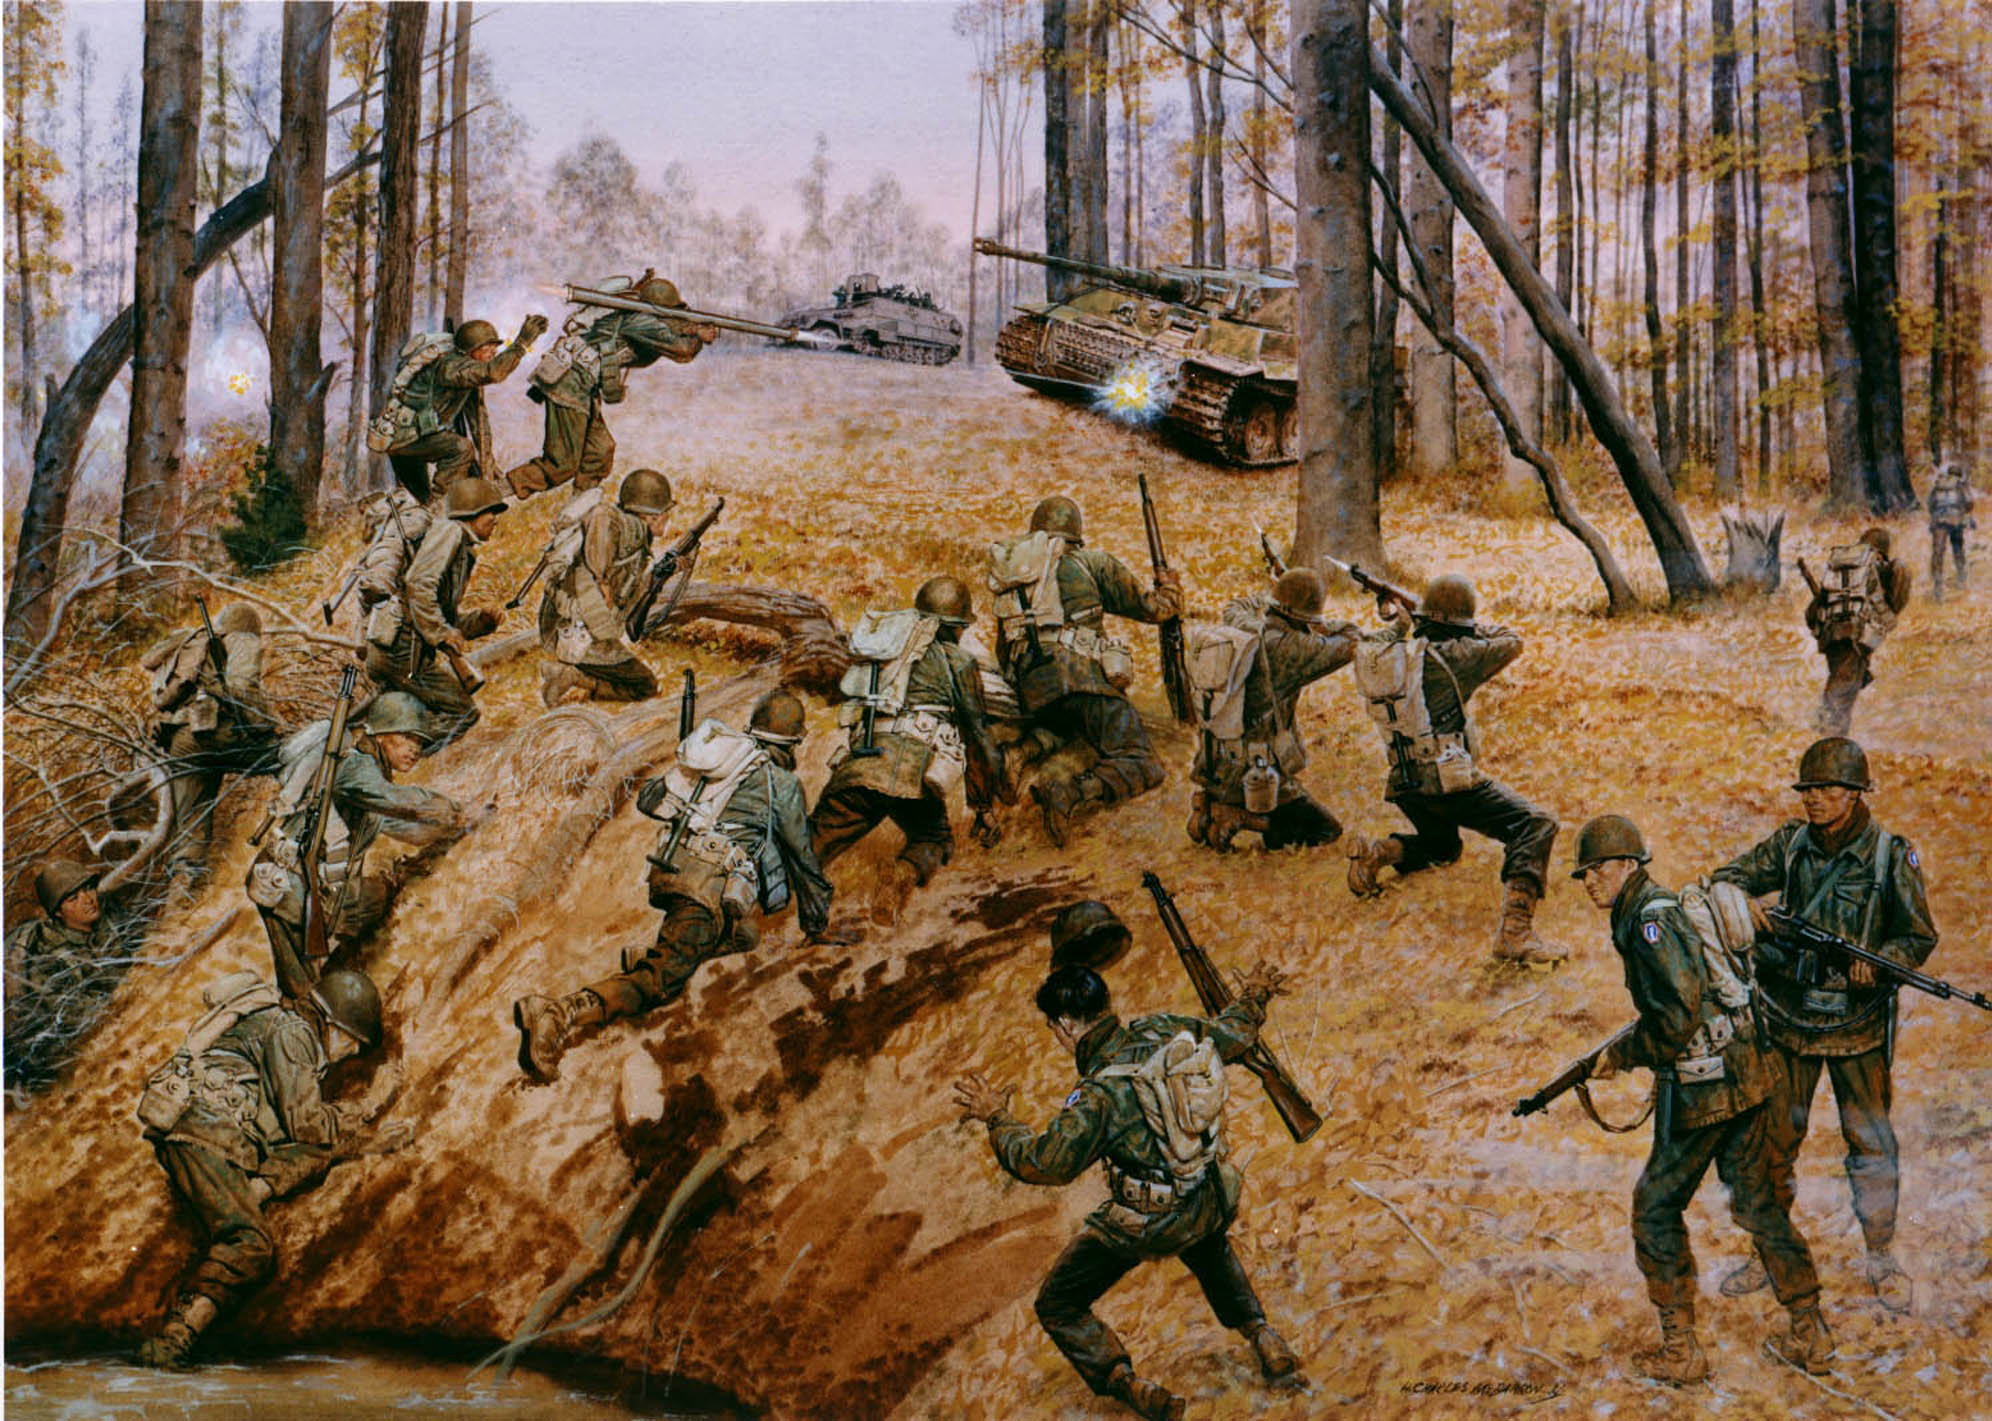 In foreground group of Japanese American soldiers climb over a ridge and begin to fire upon a German tank in the background which is accompanied by a German half-track in a wooded area.